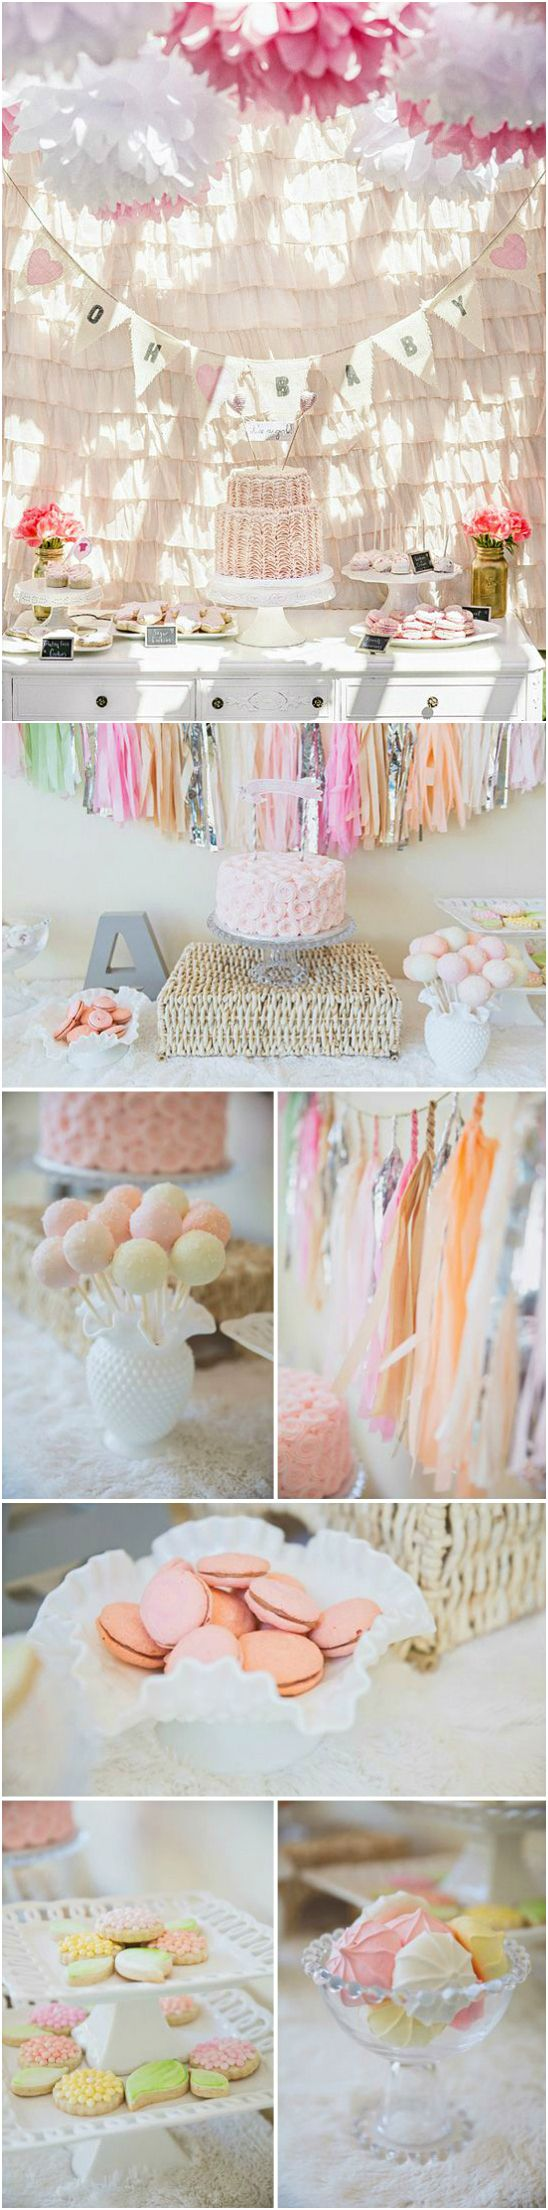 party baby shower pastel decorations baby shower ideas